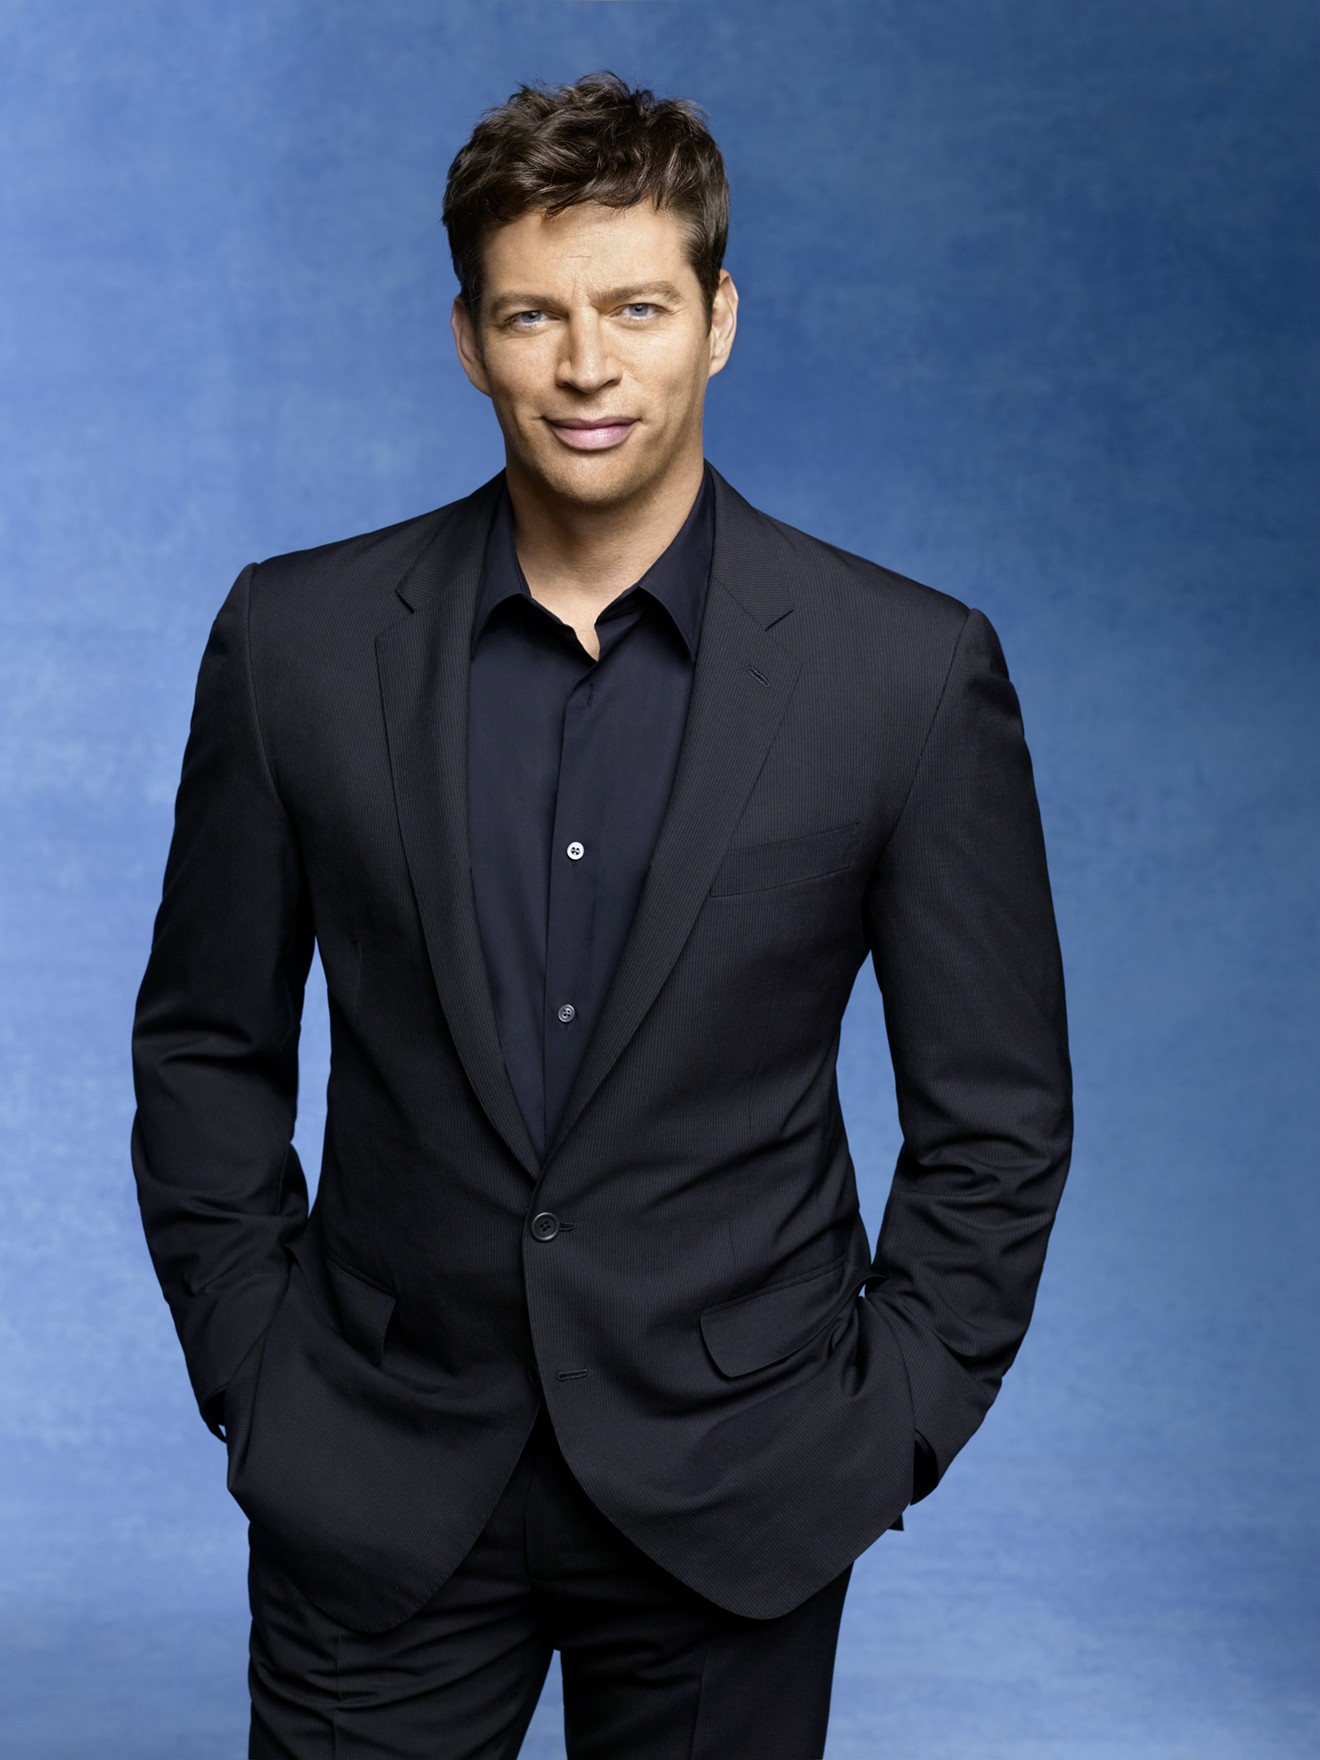 harry_connick_jr1.jpg